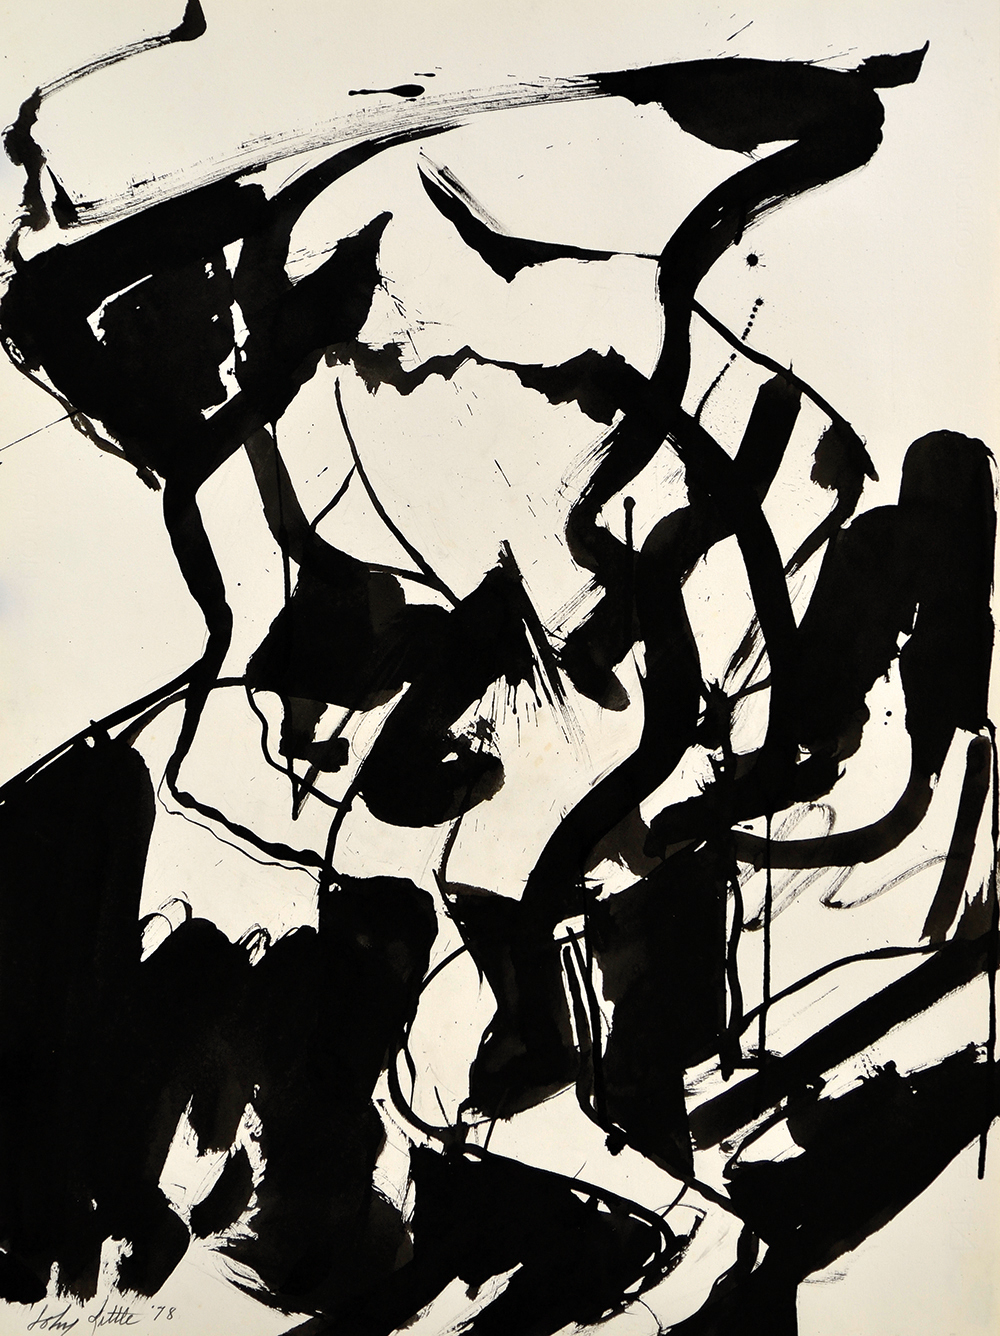 Skier,   Ink on paper, 1978, 29 3/4 x 22 1/8 inches